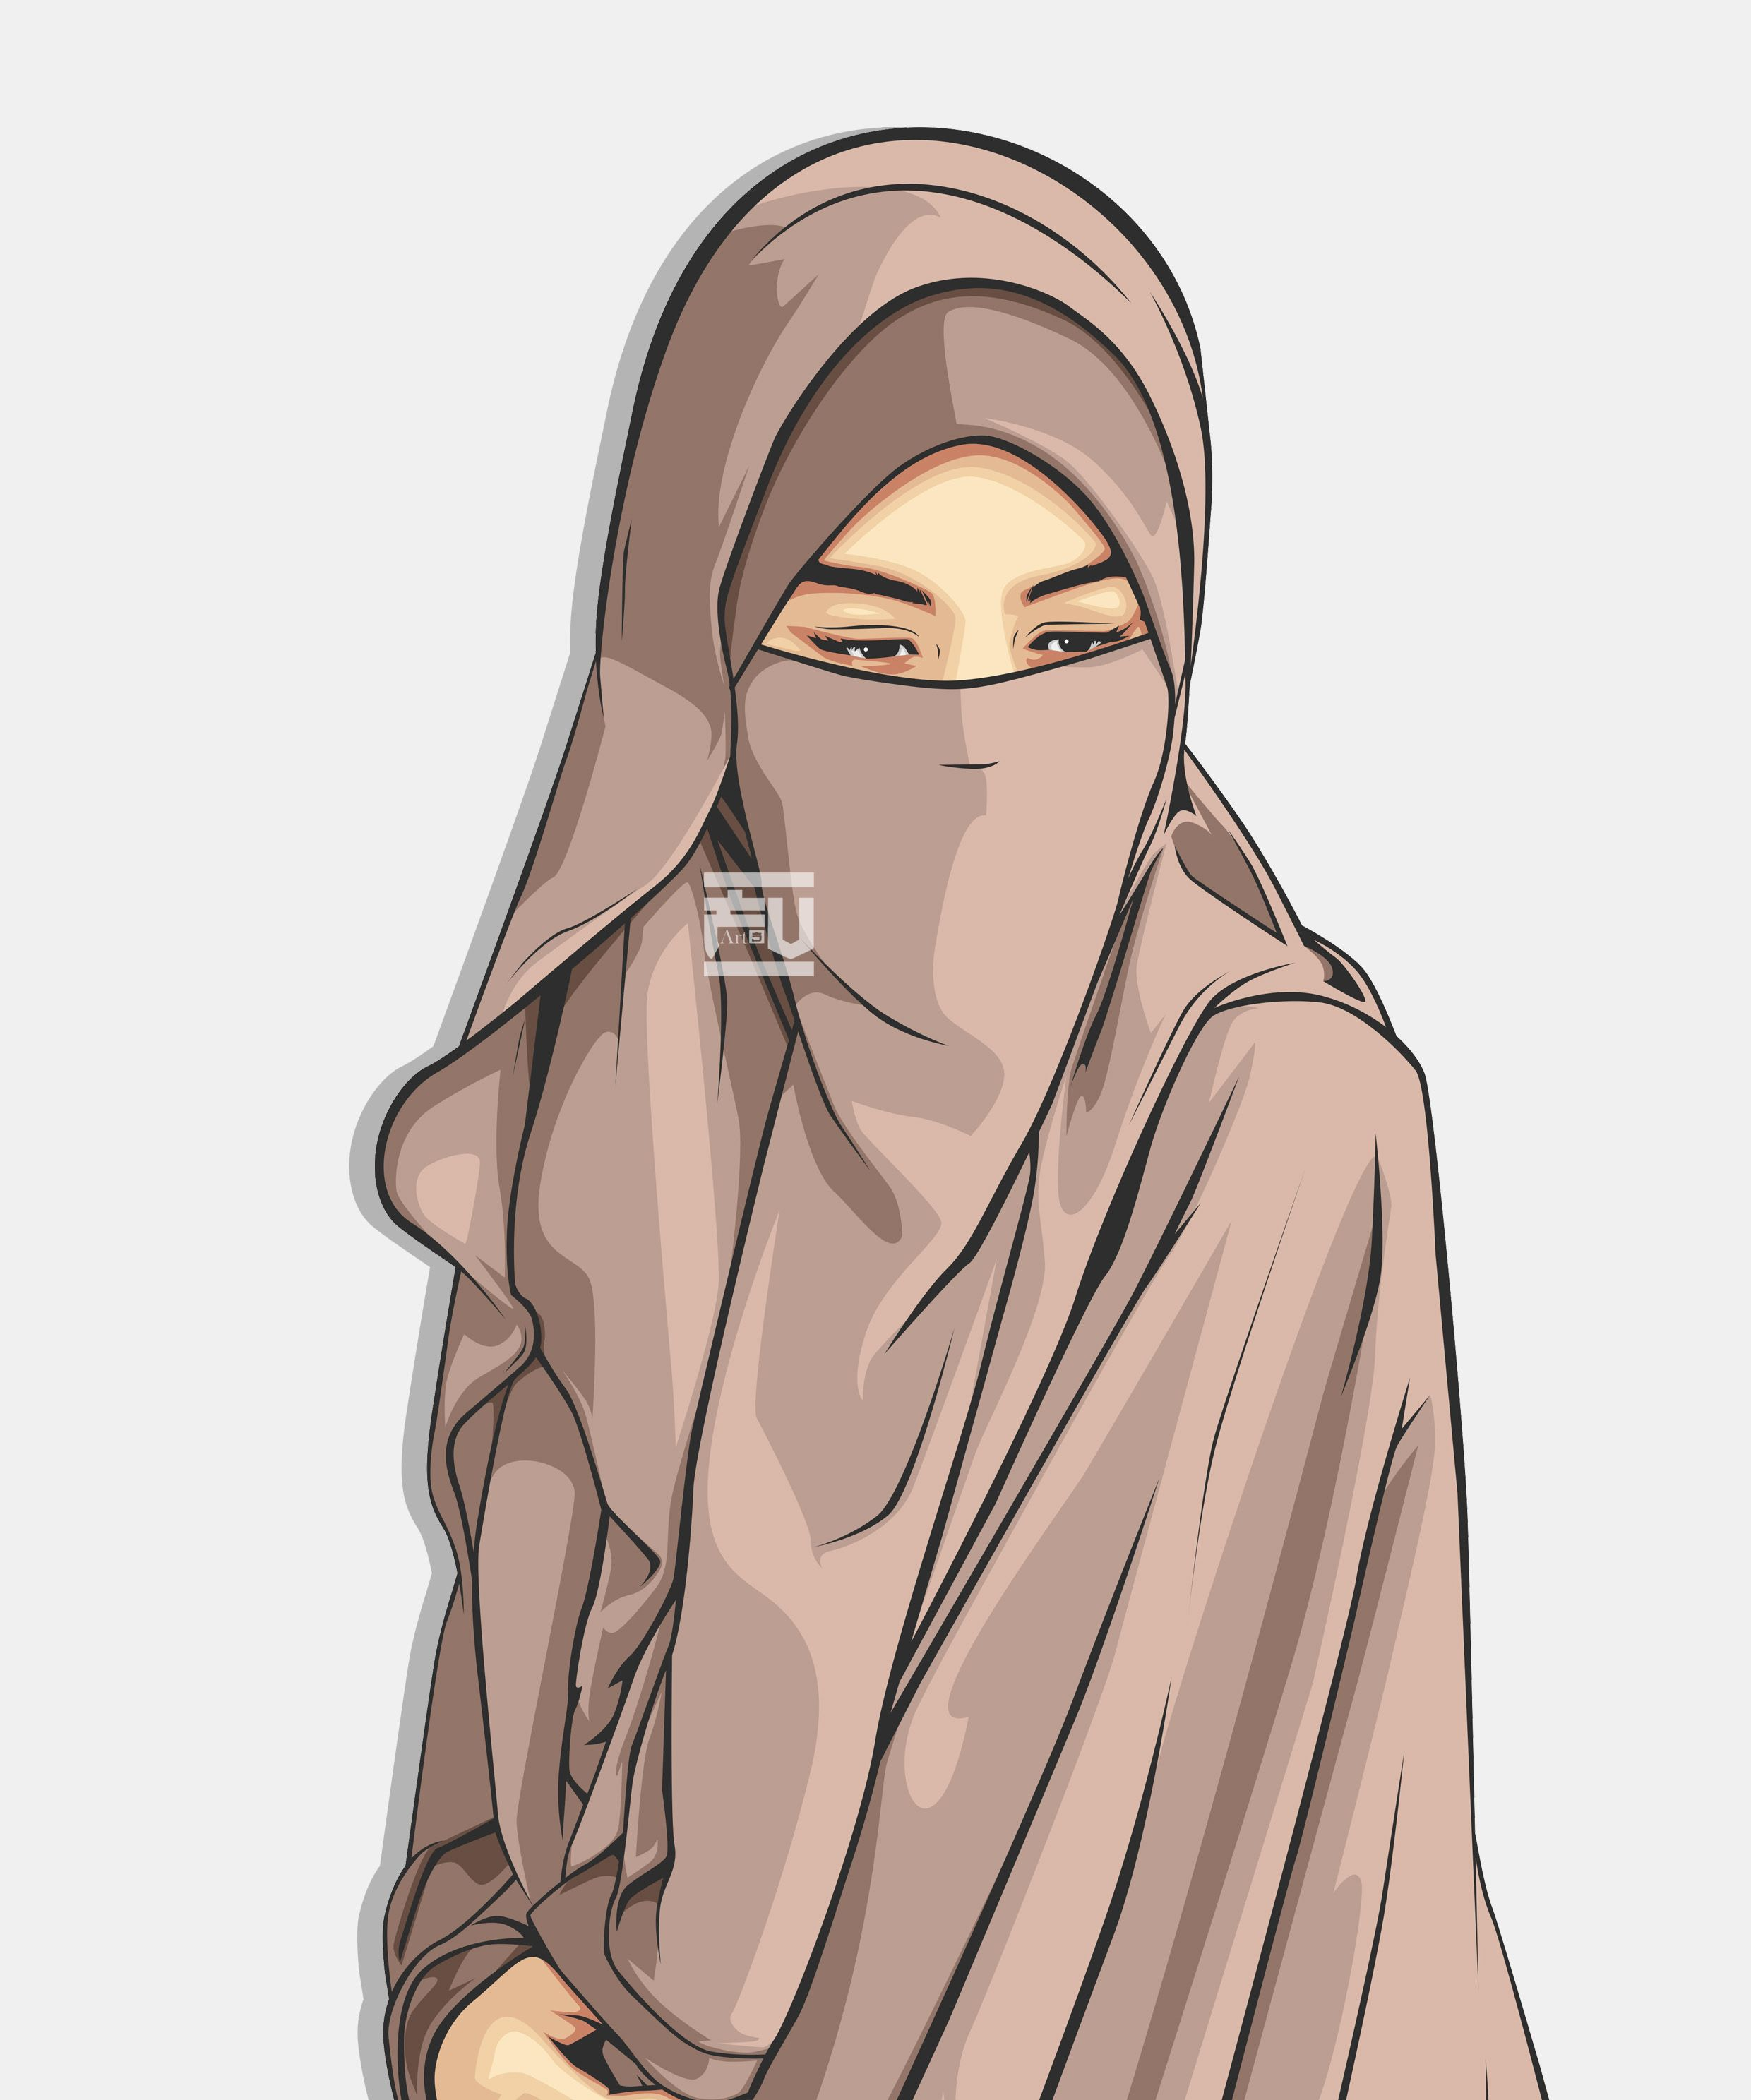 pin by fatma nouruddien on kartun islami pinterest hijab sketches of girl 2480x2975 download hd wallpaper wallpapertip pin by fatma nouruddien on kartun